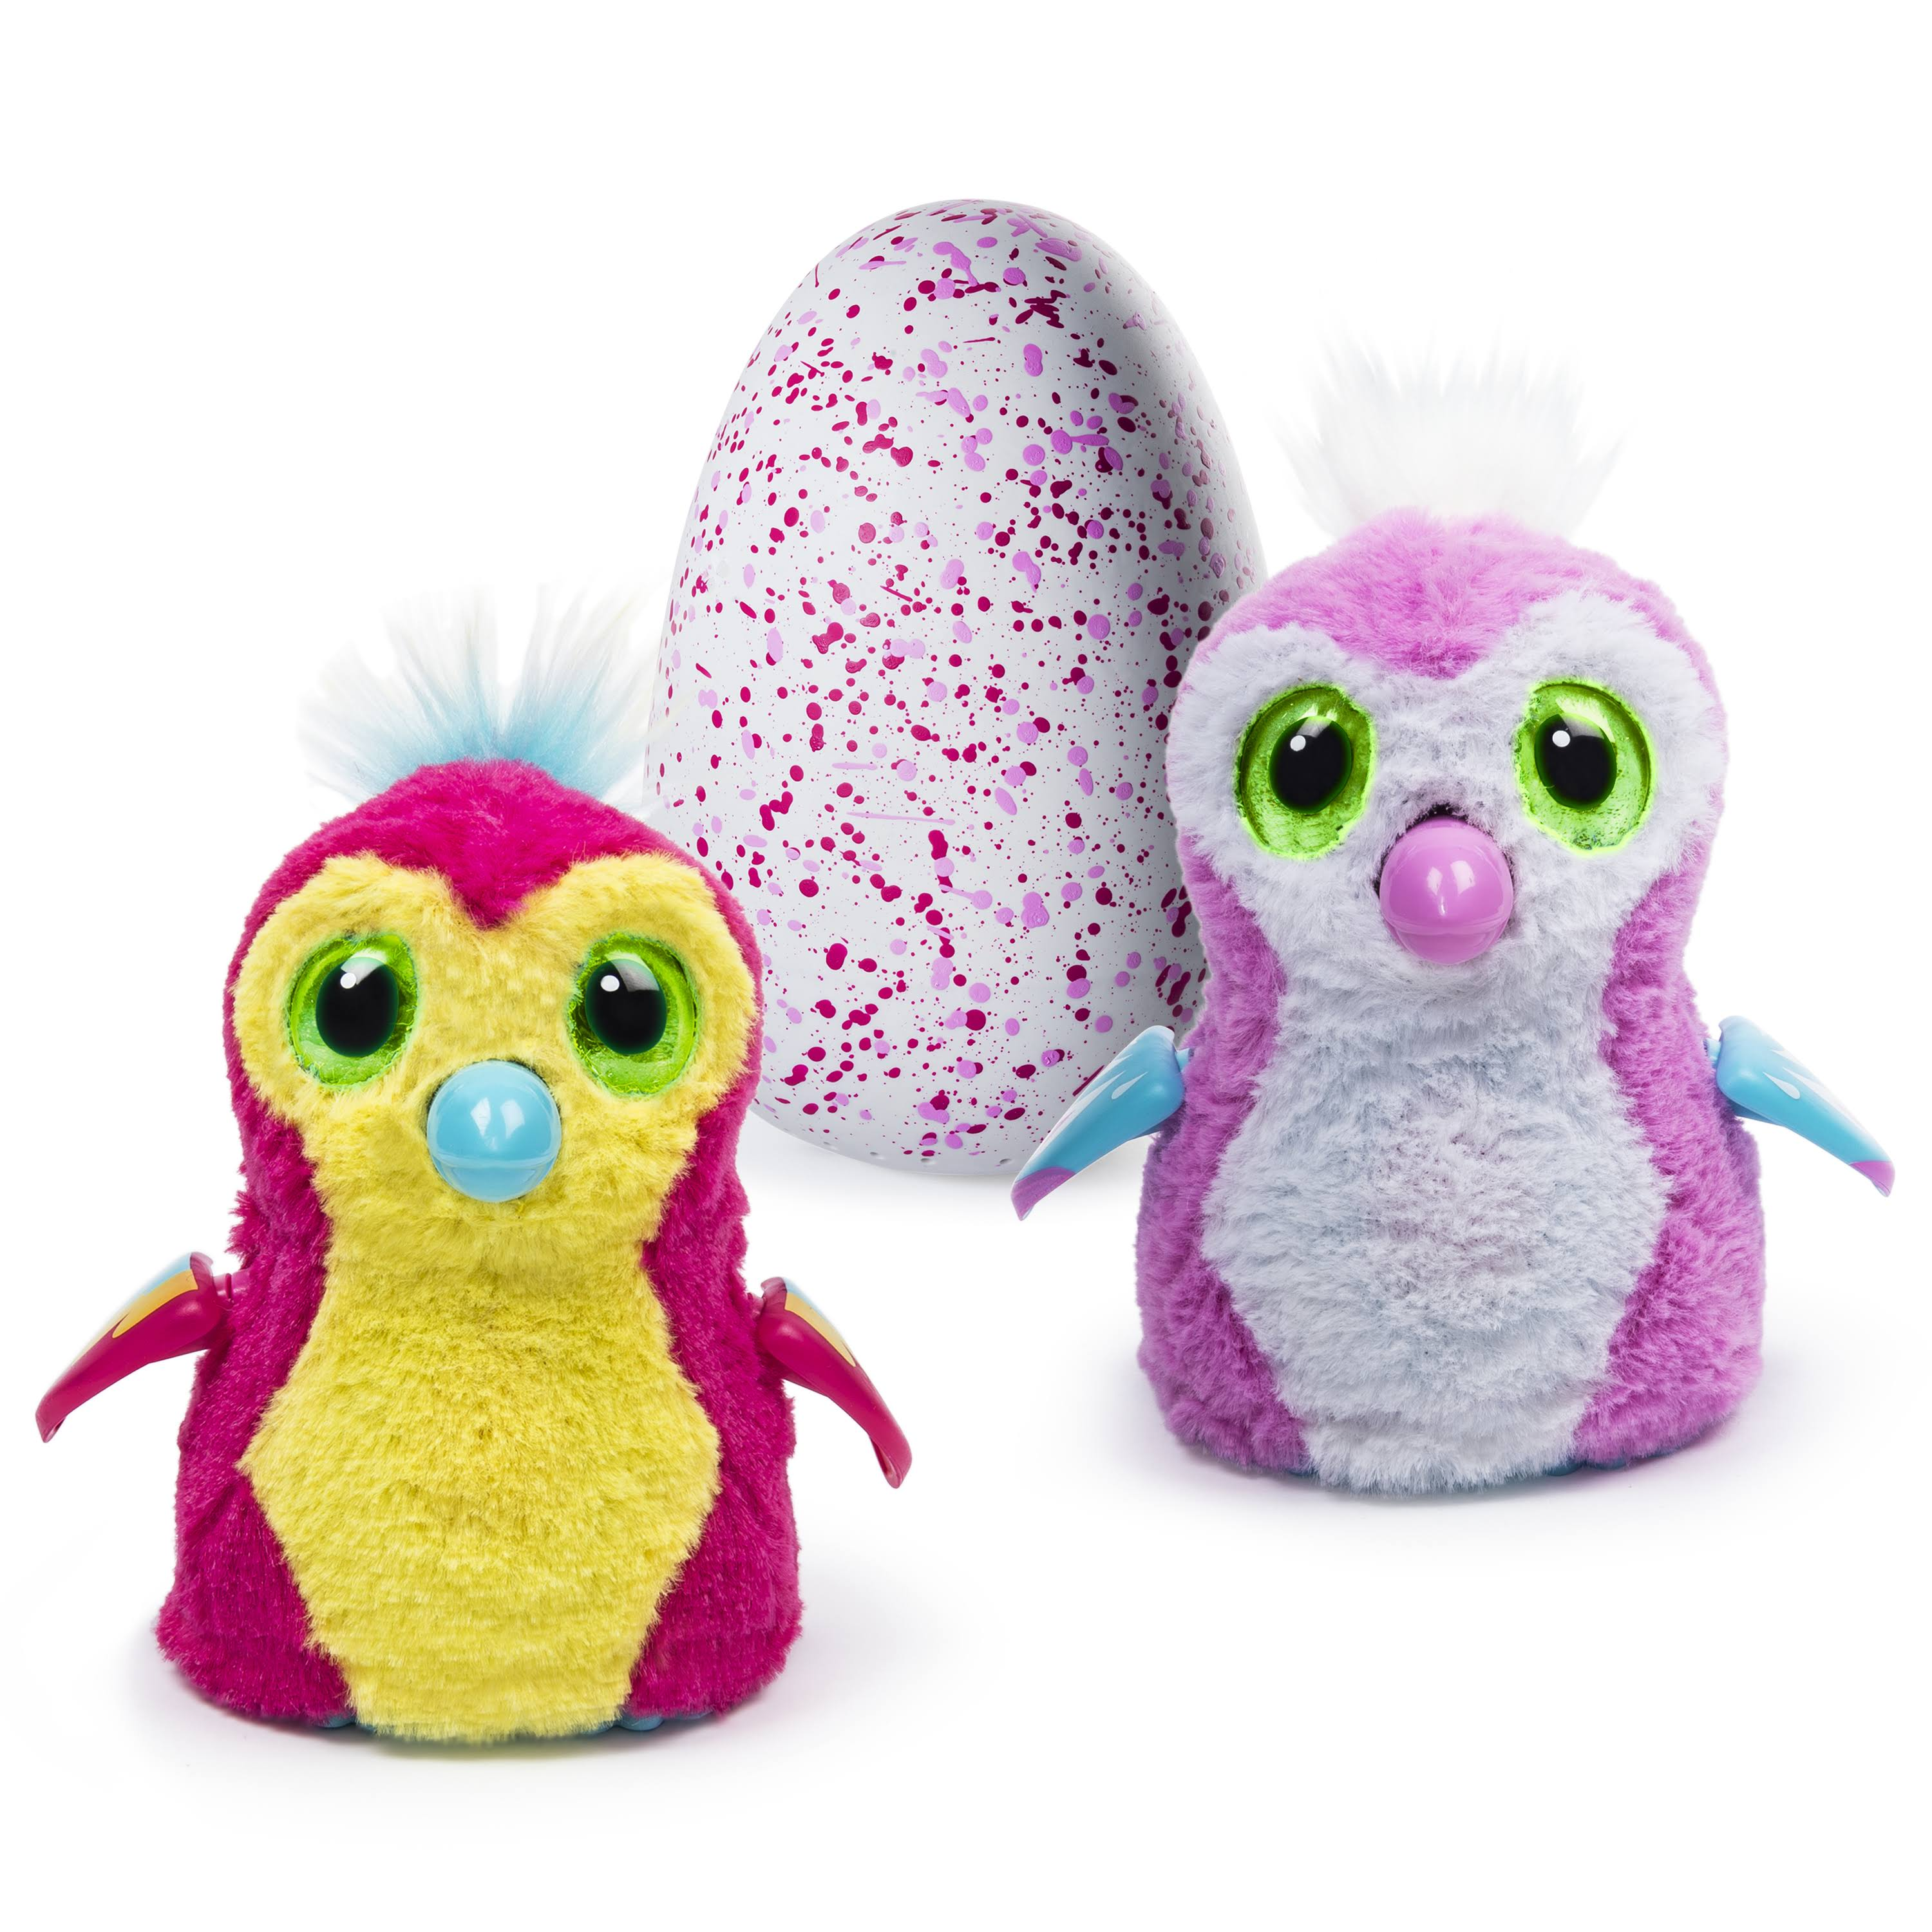 Spin Master Hatchimals Penguala Hatching Egg Toys - Pink/Yellow